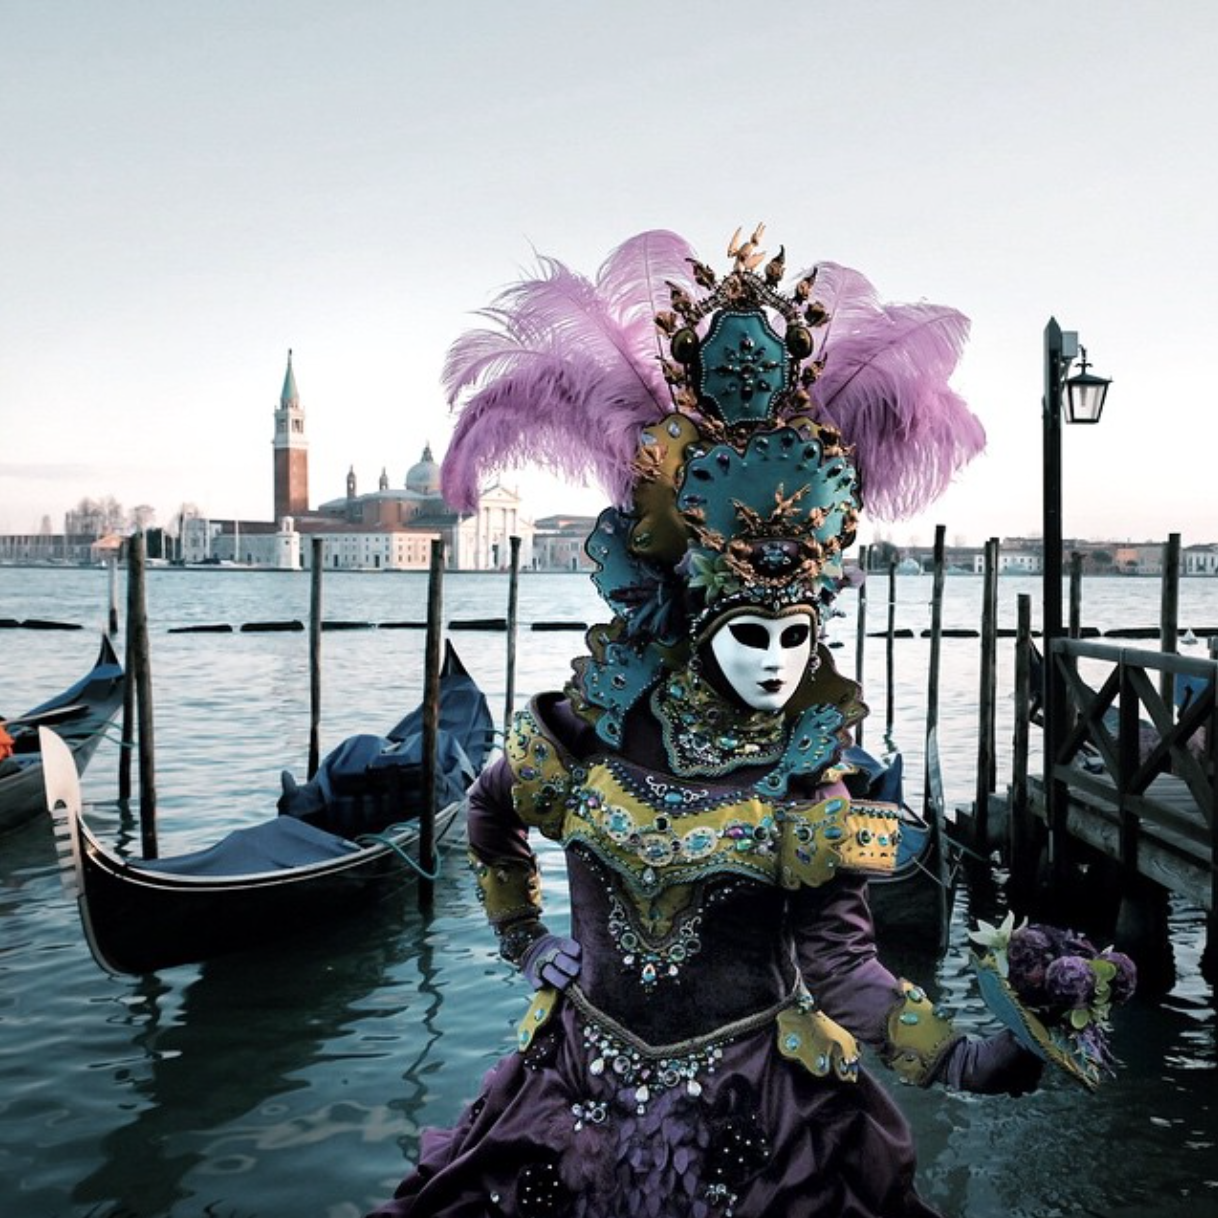 Beautiful image by Marco Gaggio on Instagram of Venice's version of Carnival